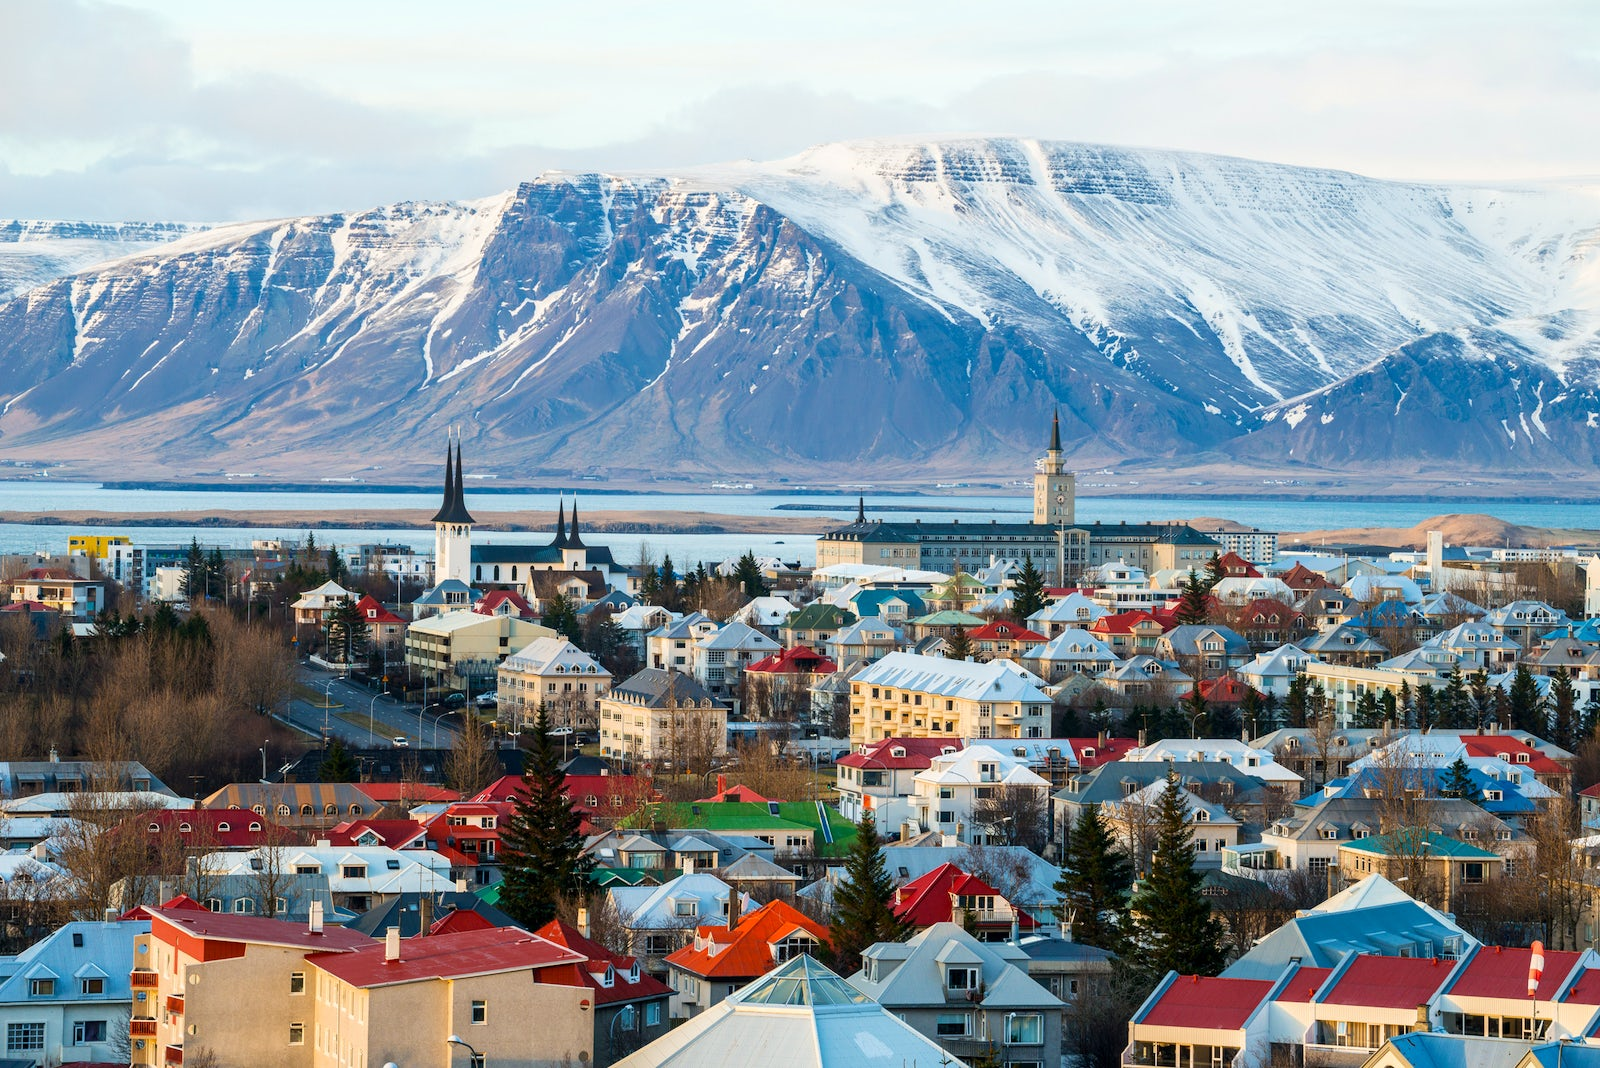 !i18n:en:data.cities:reykjavik.picture.caption